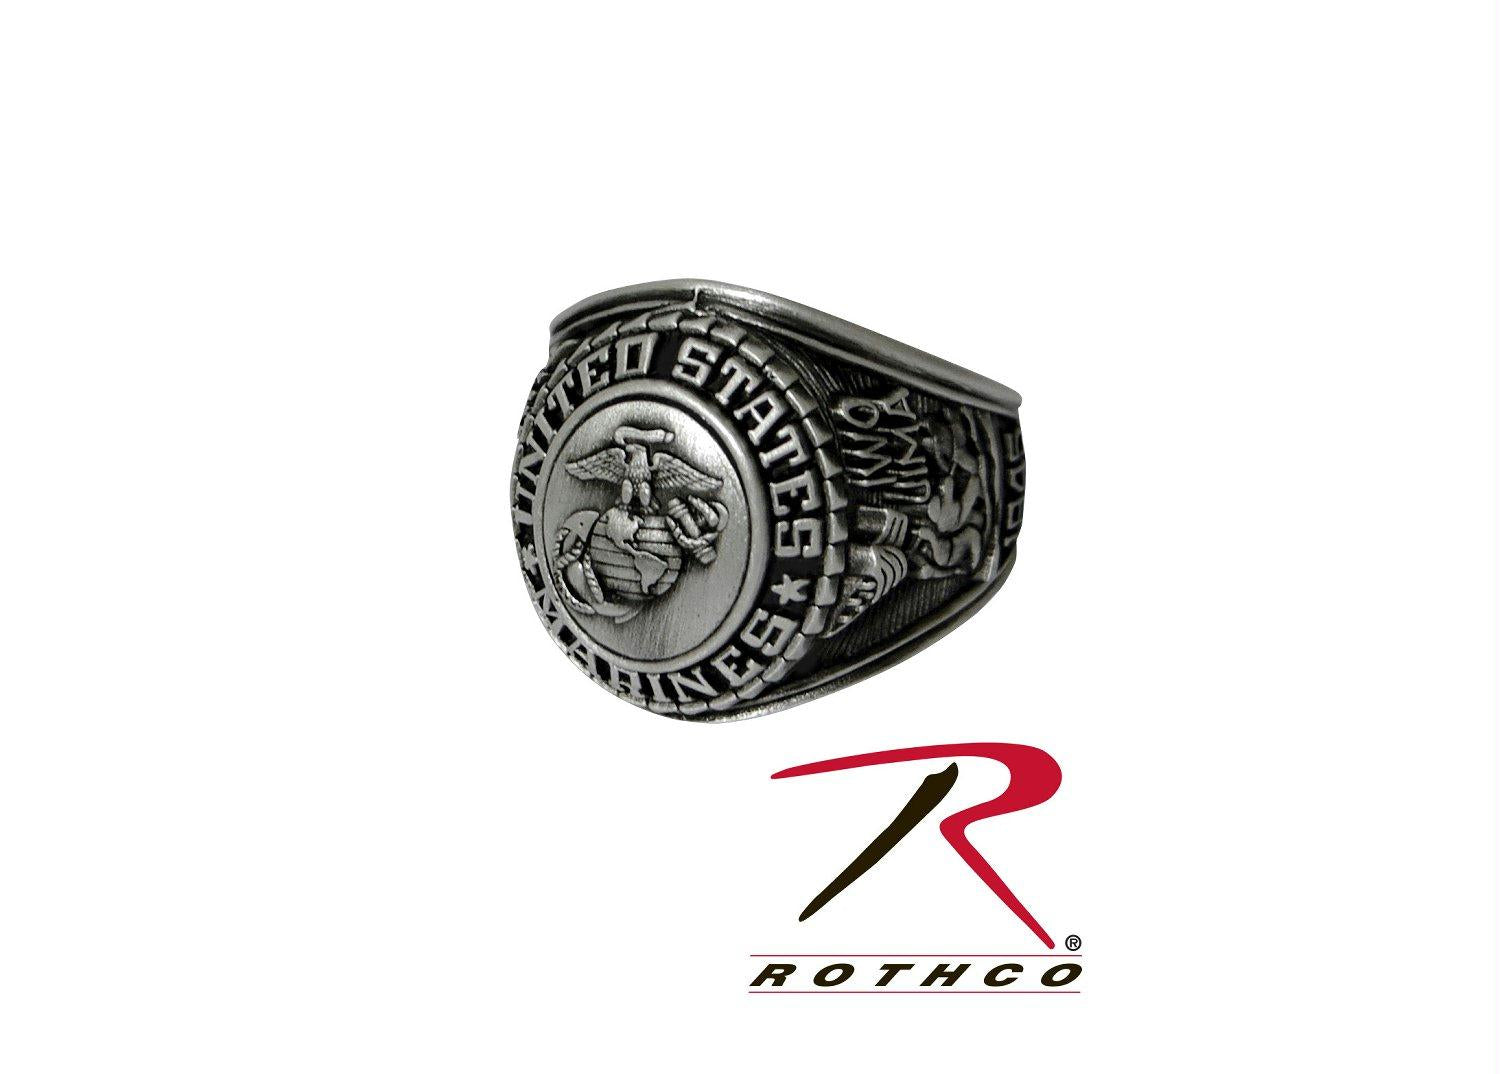 Deluxe Silver Insignia Ring - Marines / 11